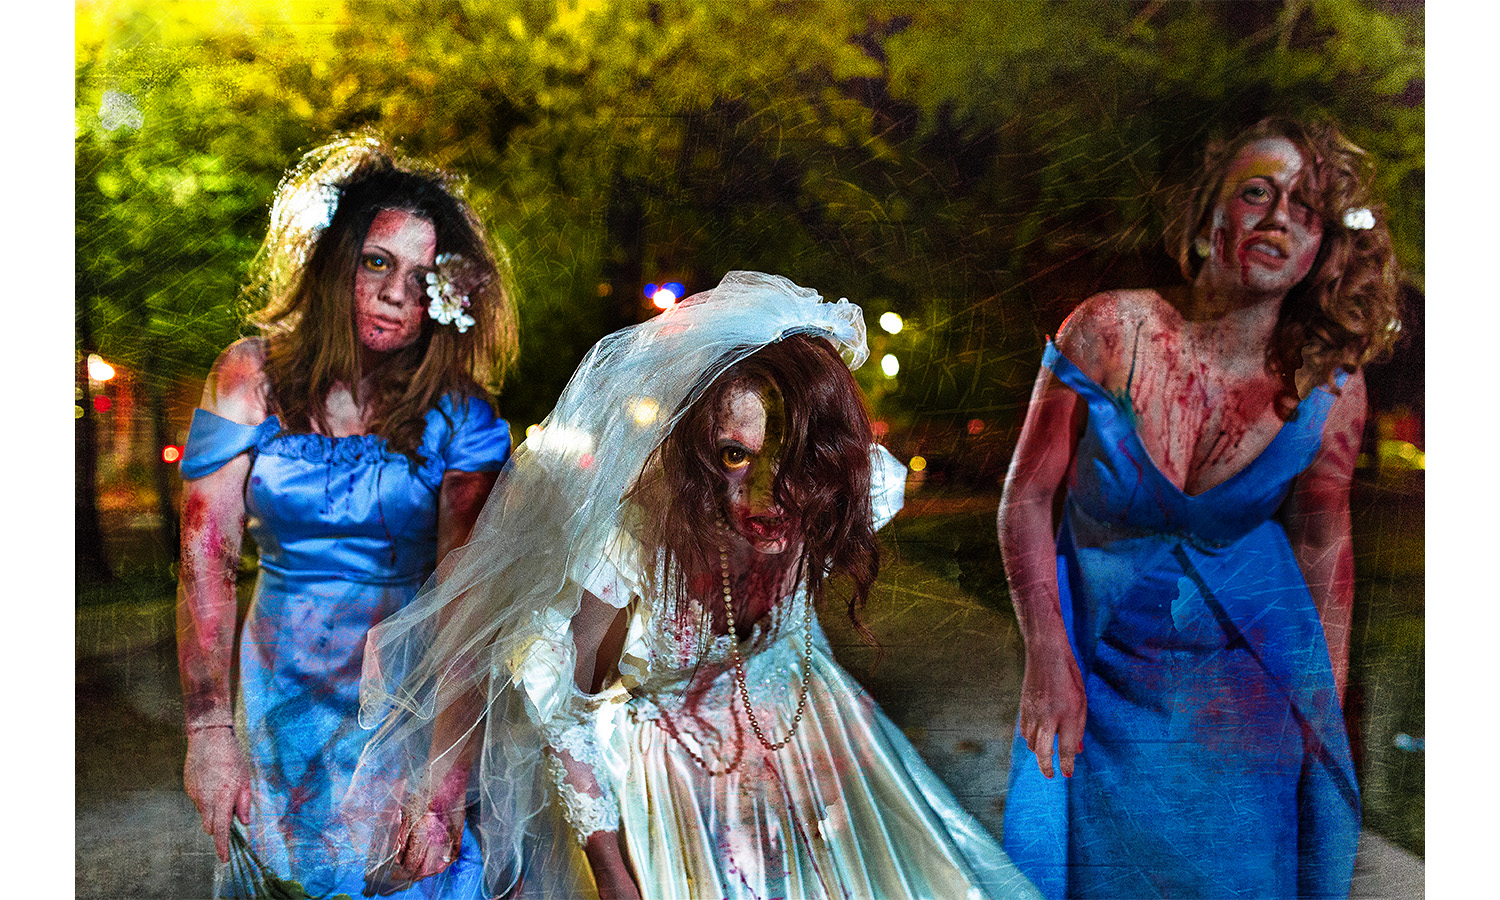 Zoombie bride weddingDead1 Conceptual